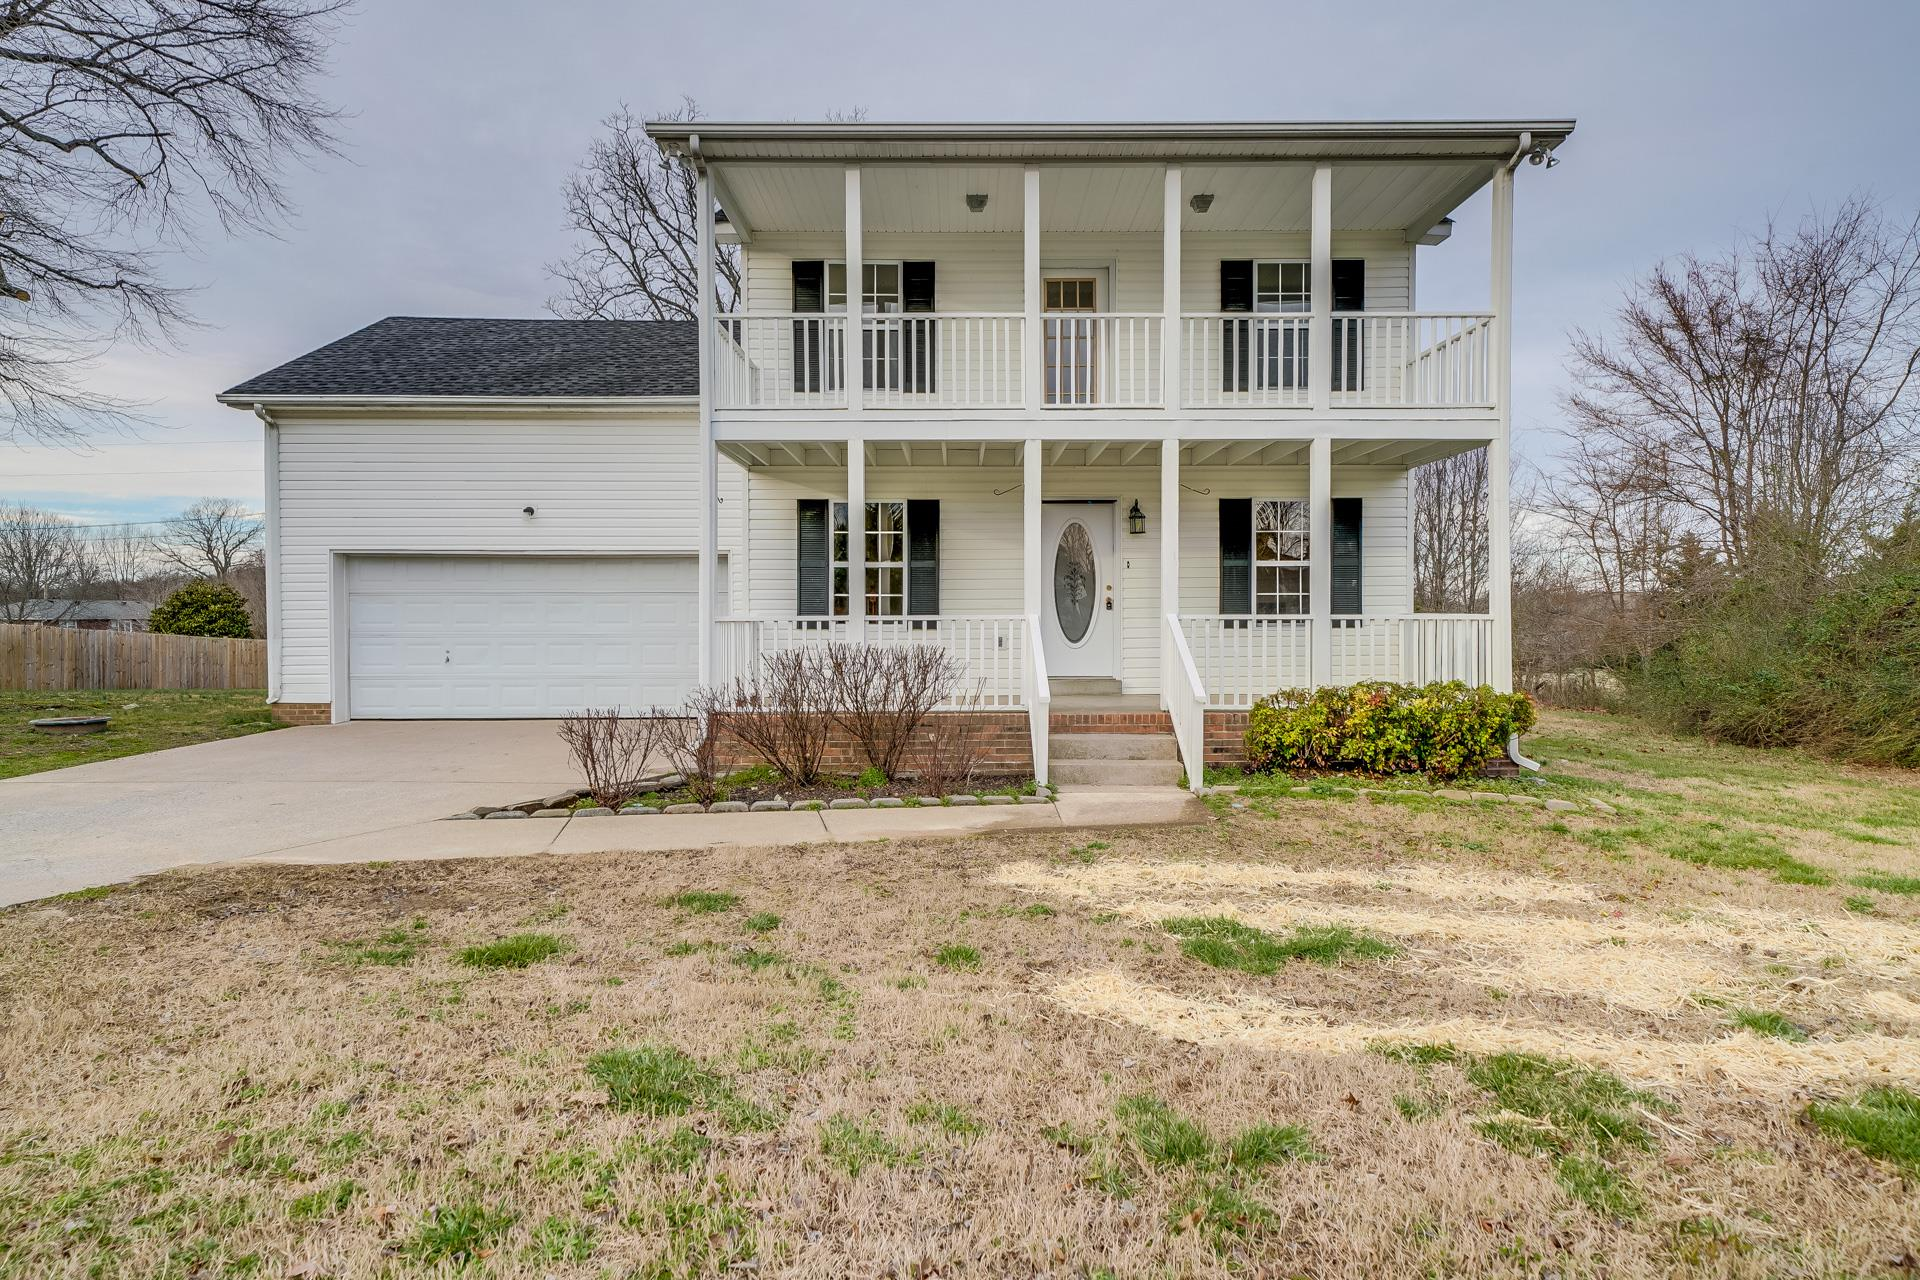 7207 Mary Susan Ln 37062 - One of Fairview Homes for Sale